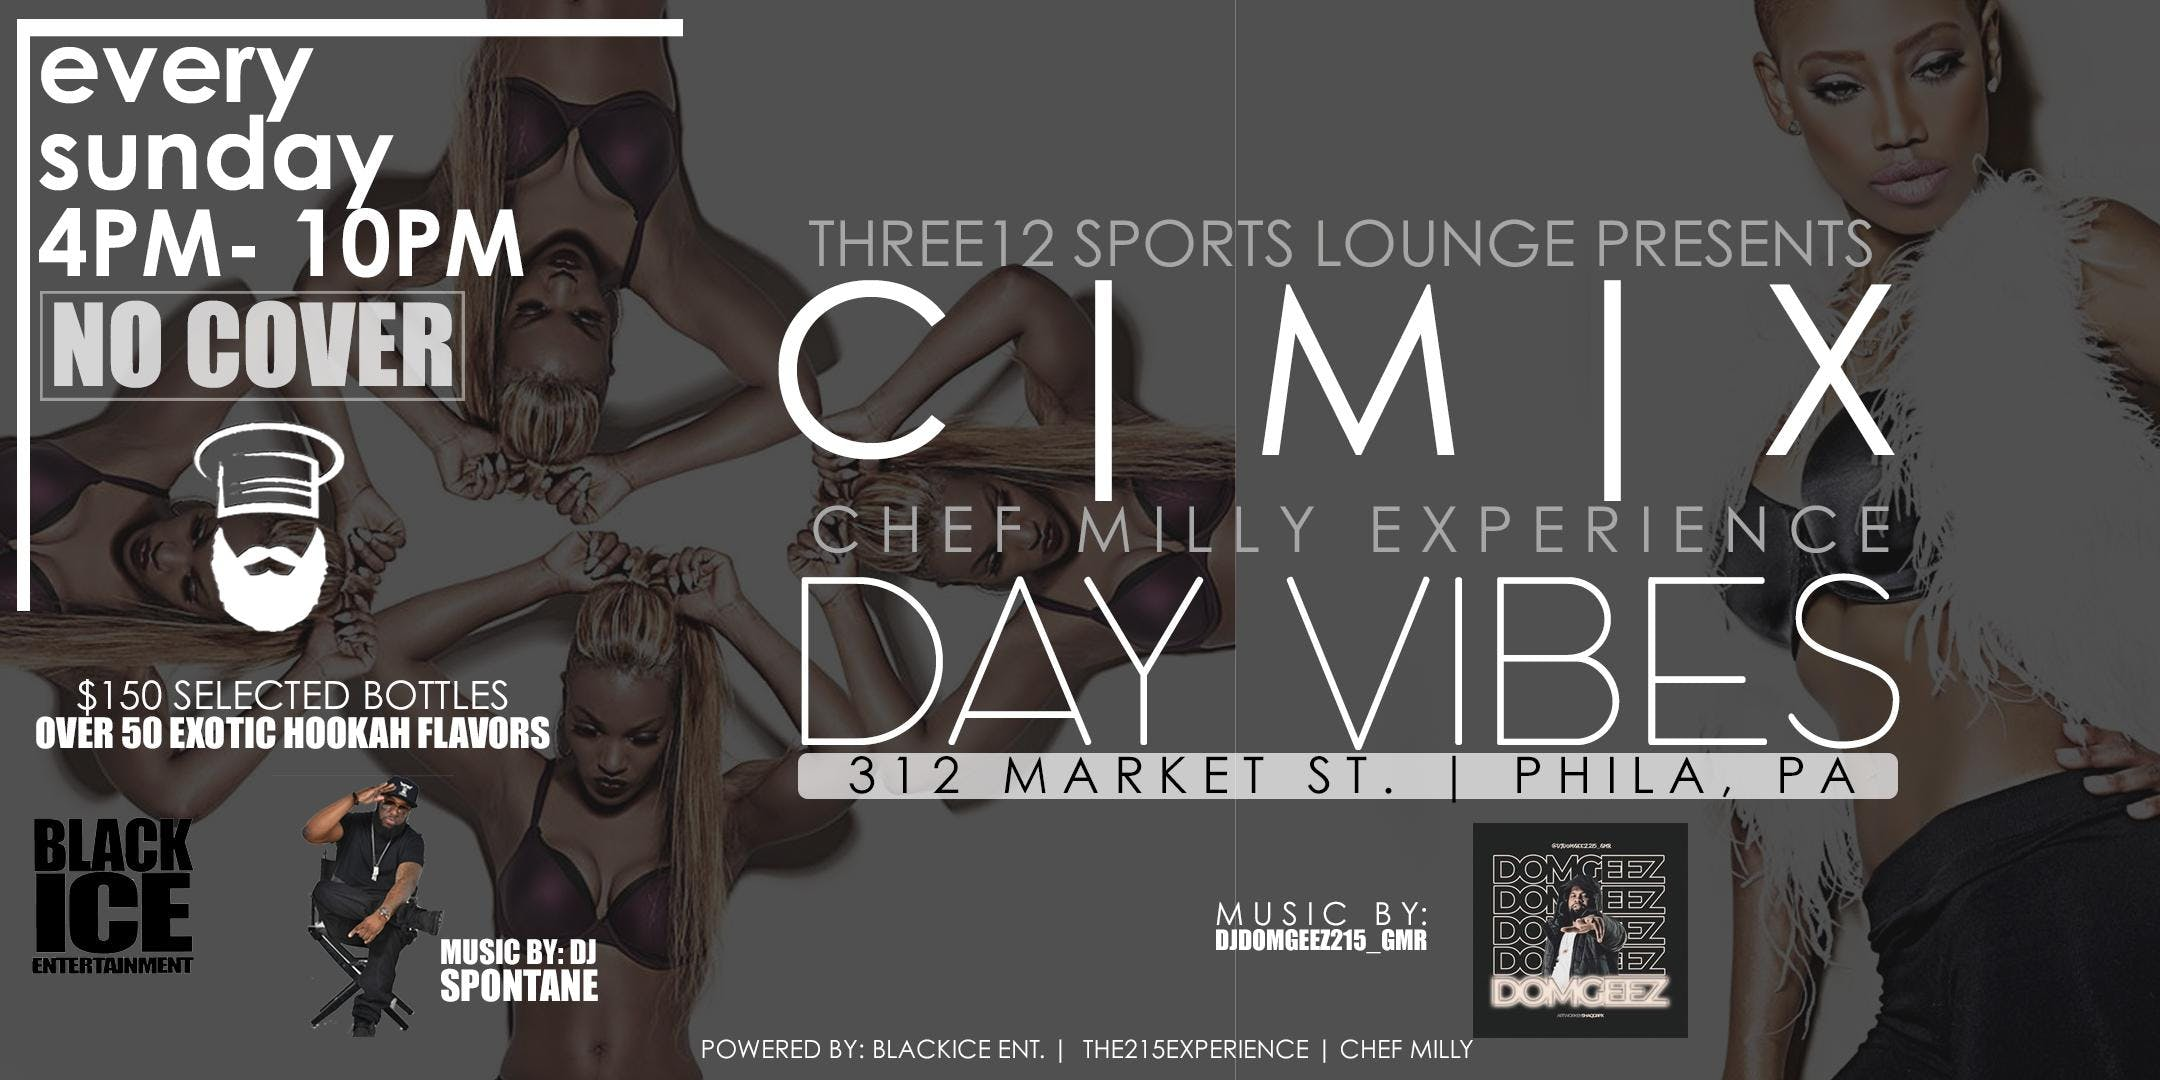 312 SPORTS LOUNGE PRESENTS: THE CHEF MILLY EXPERIENCE DAY VIBE #DAYPARTY